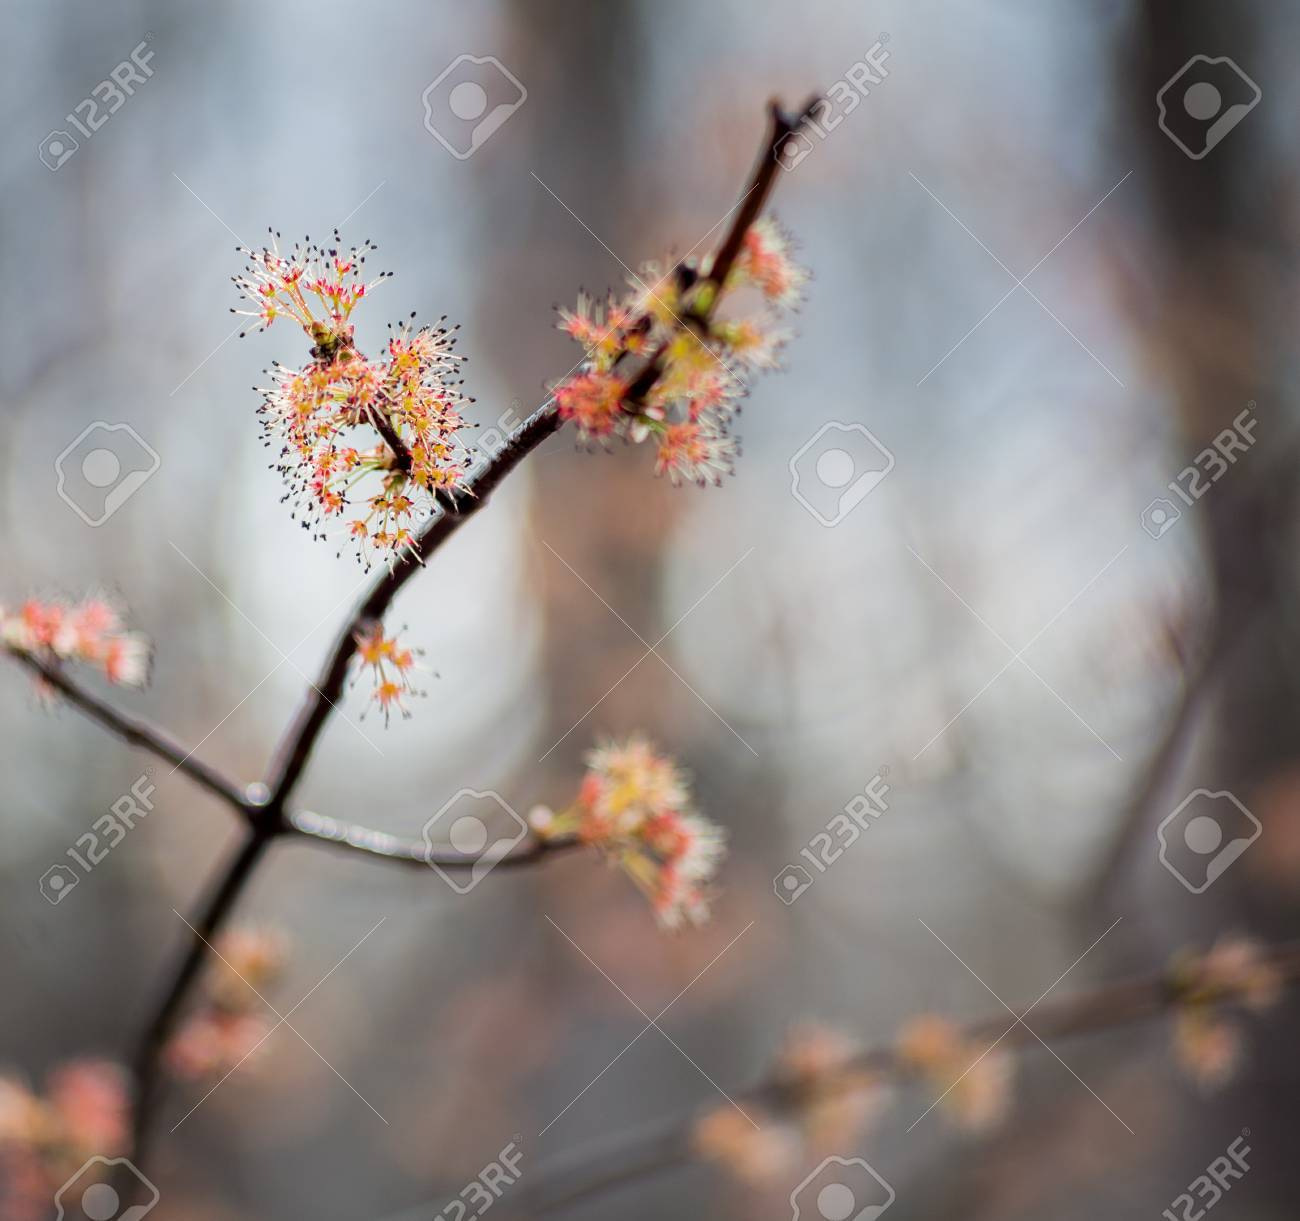 Clusters Of Pink And Orange Flowers With Black Stamen On A Tree